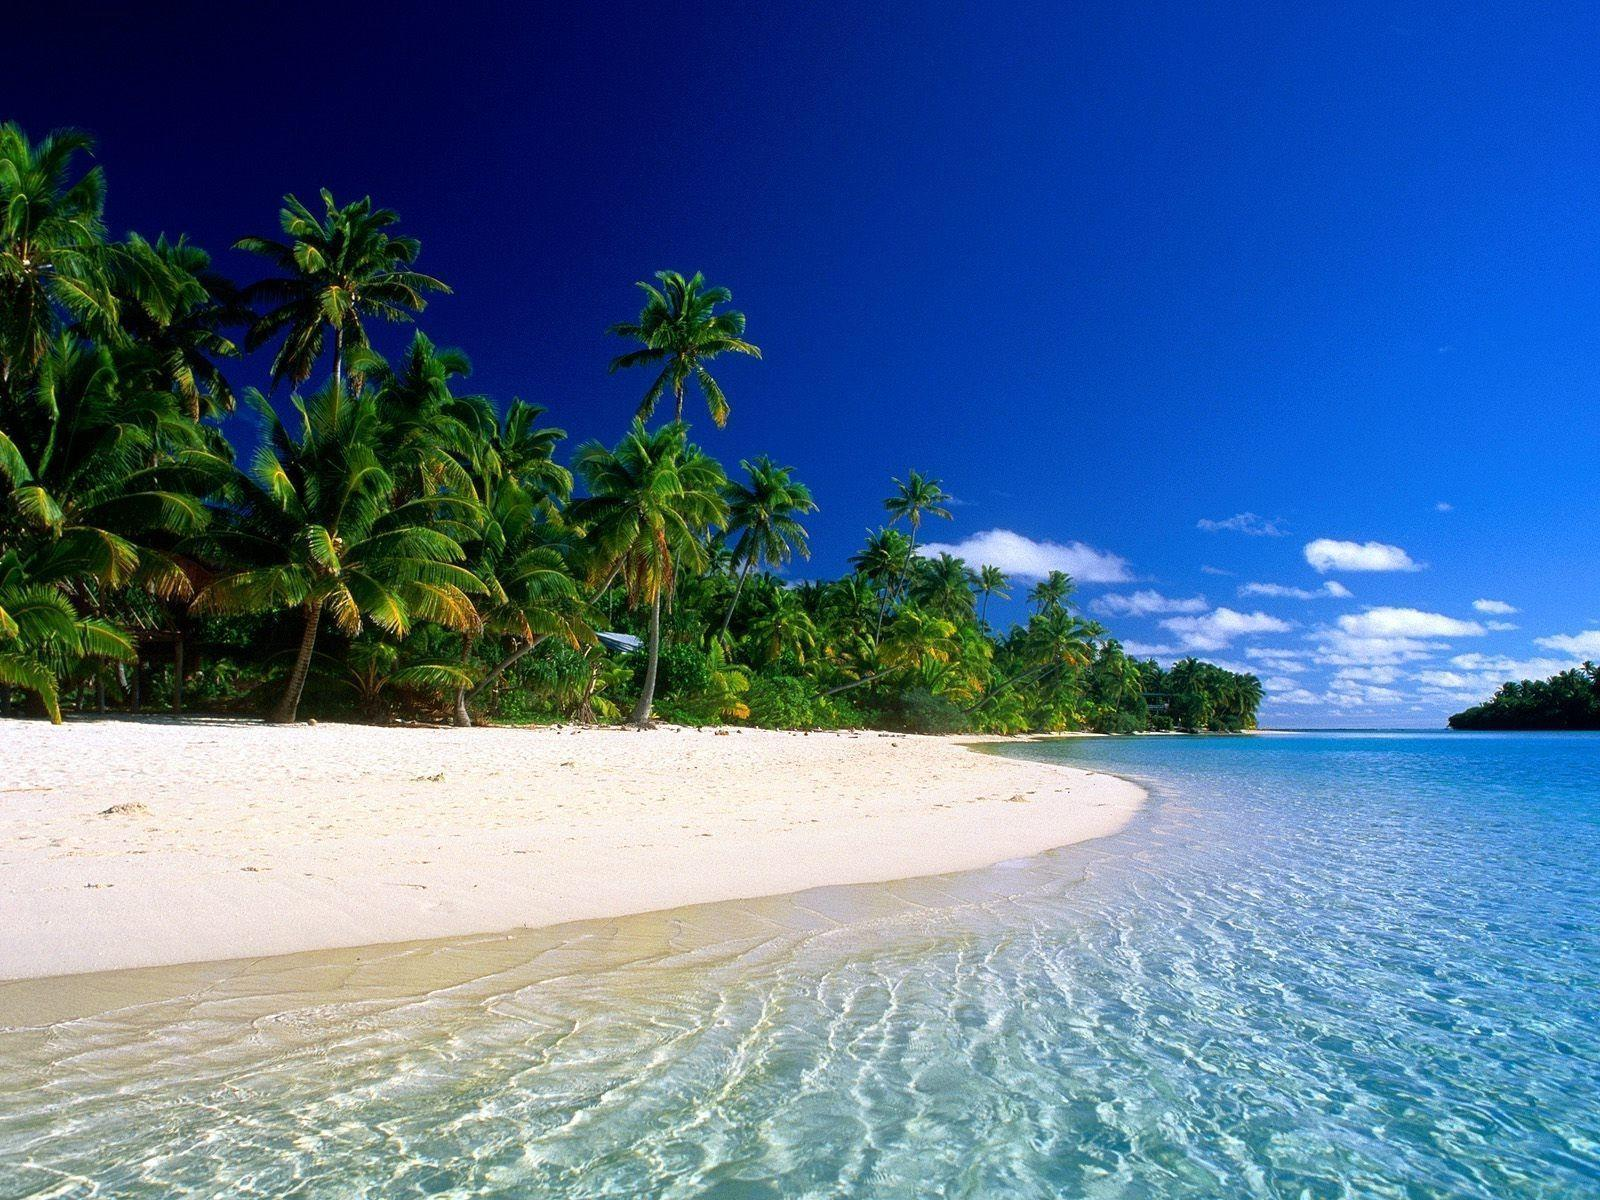 Best Beaches In The World Wallpaper Hd Widescreen 11 HD Wallpapers